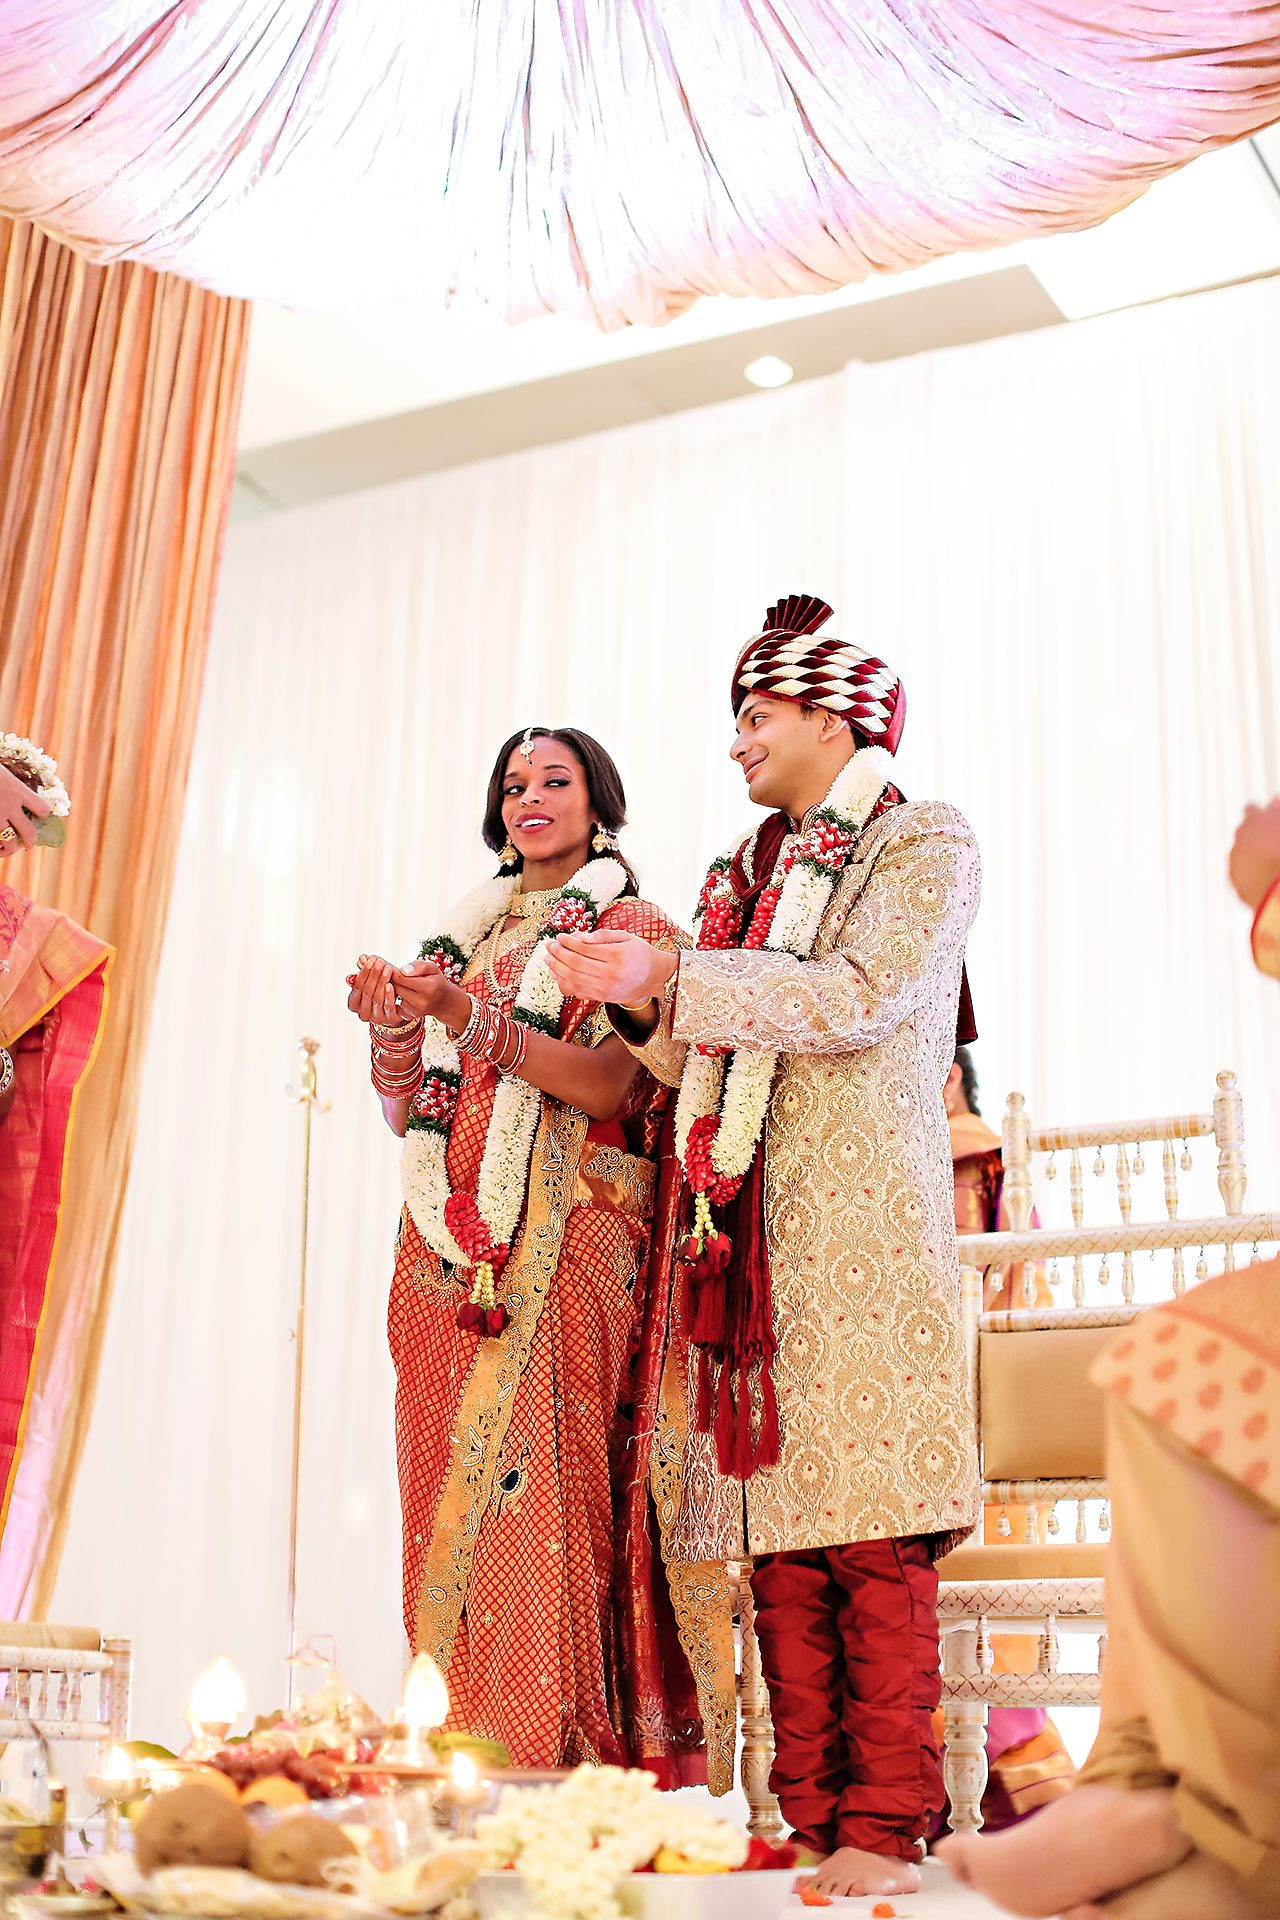 Joie Nikhil JW Marriott Indian Wedding 256